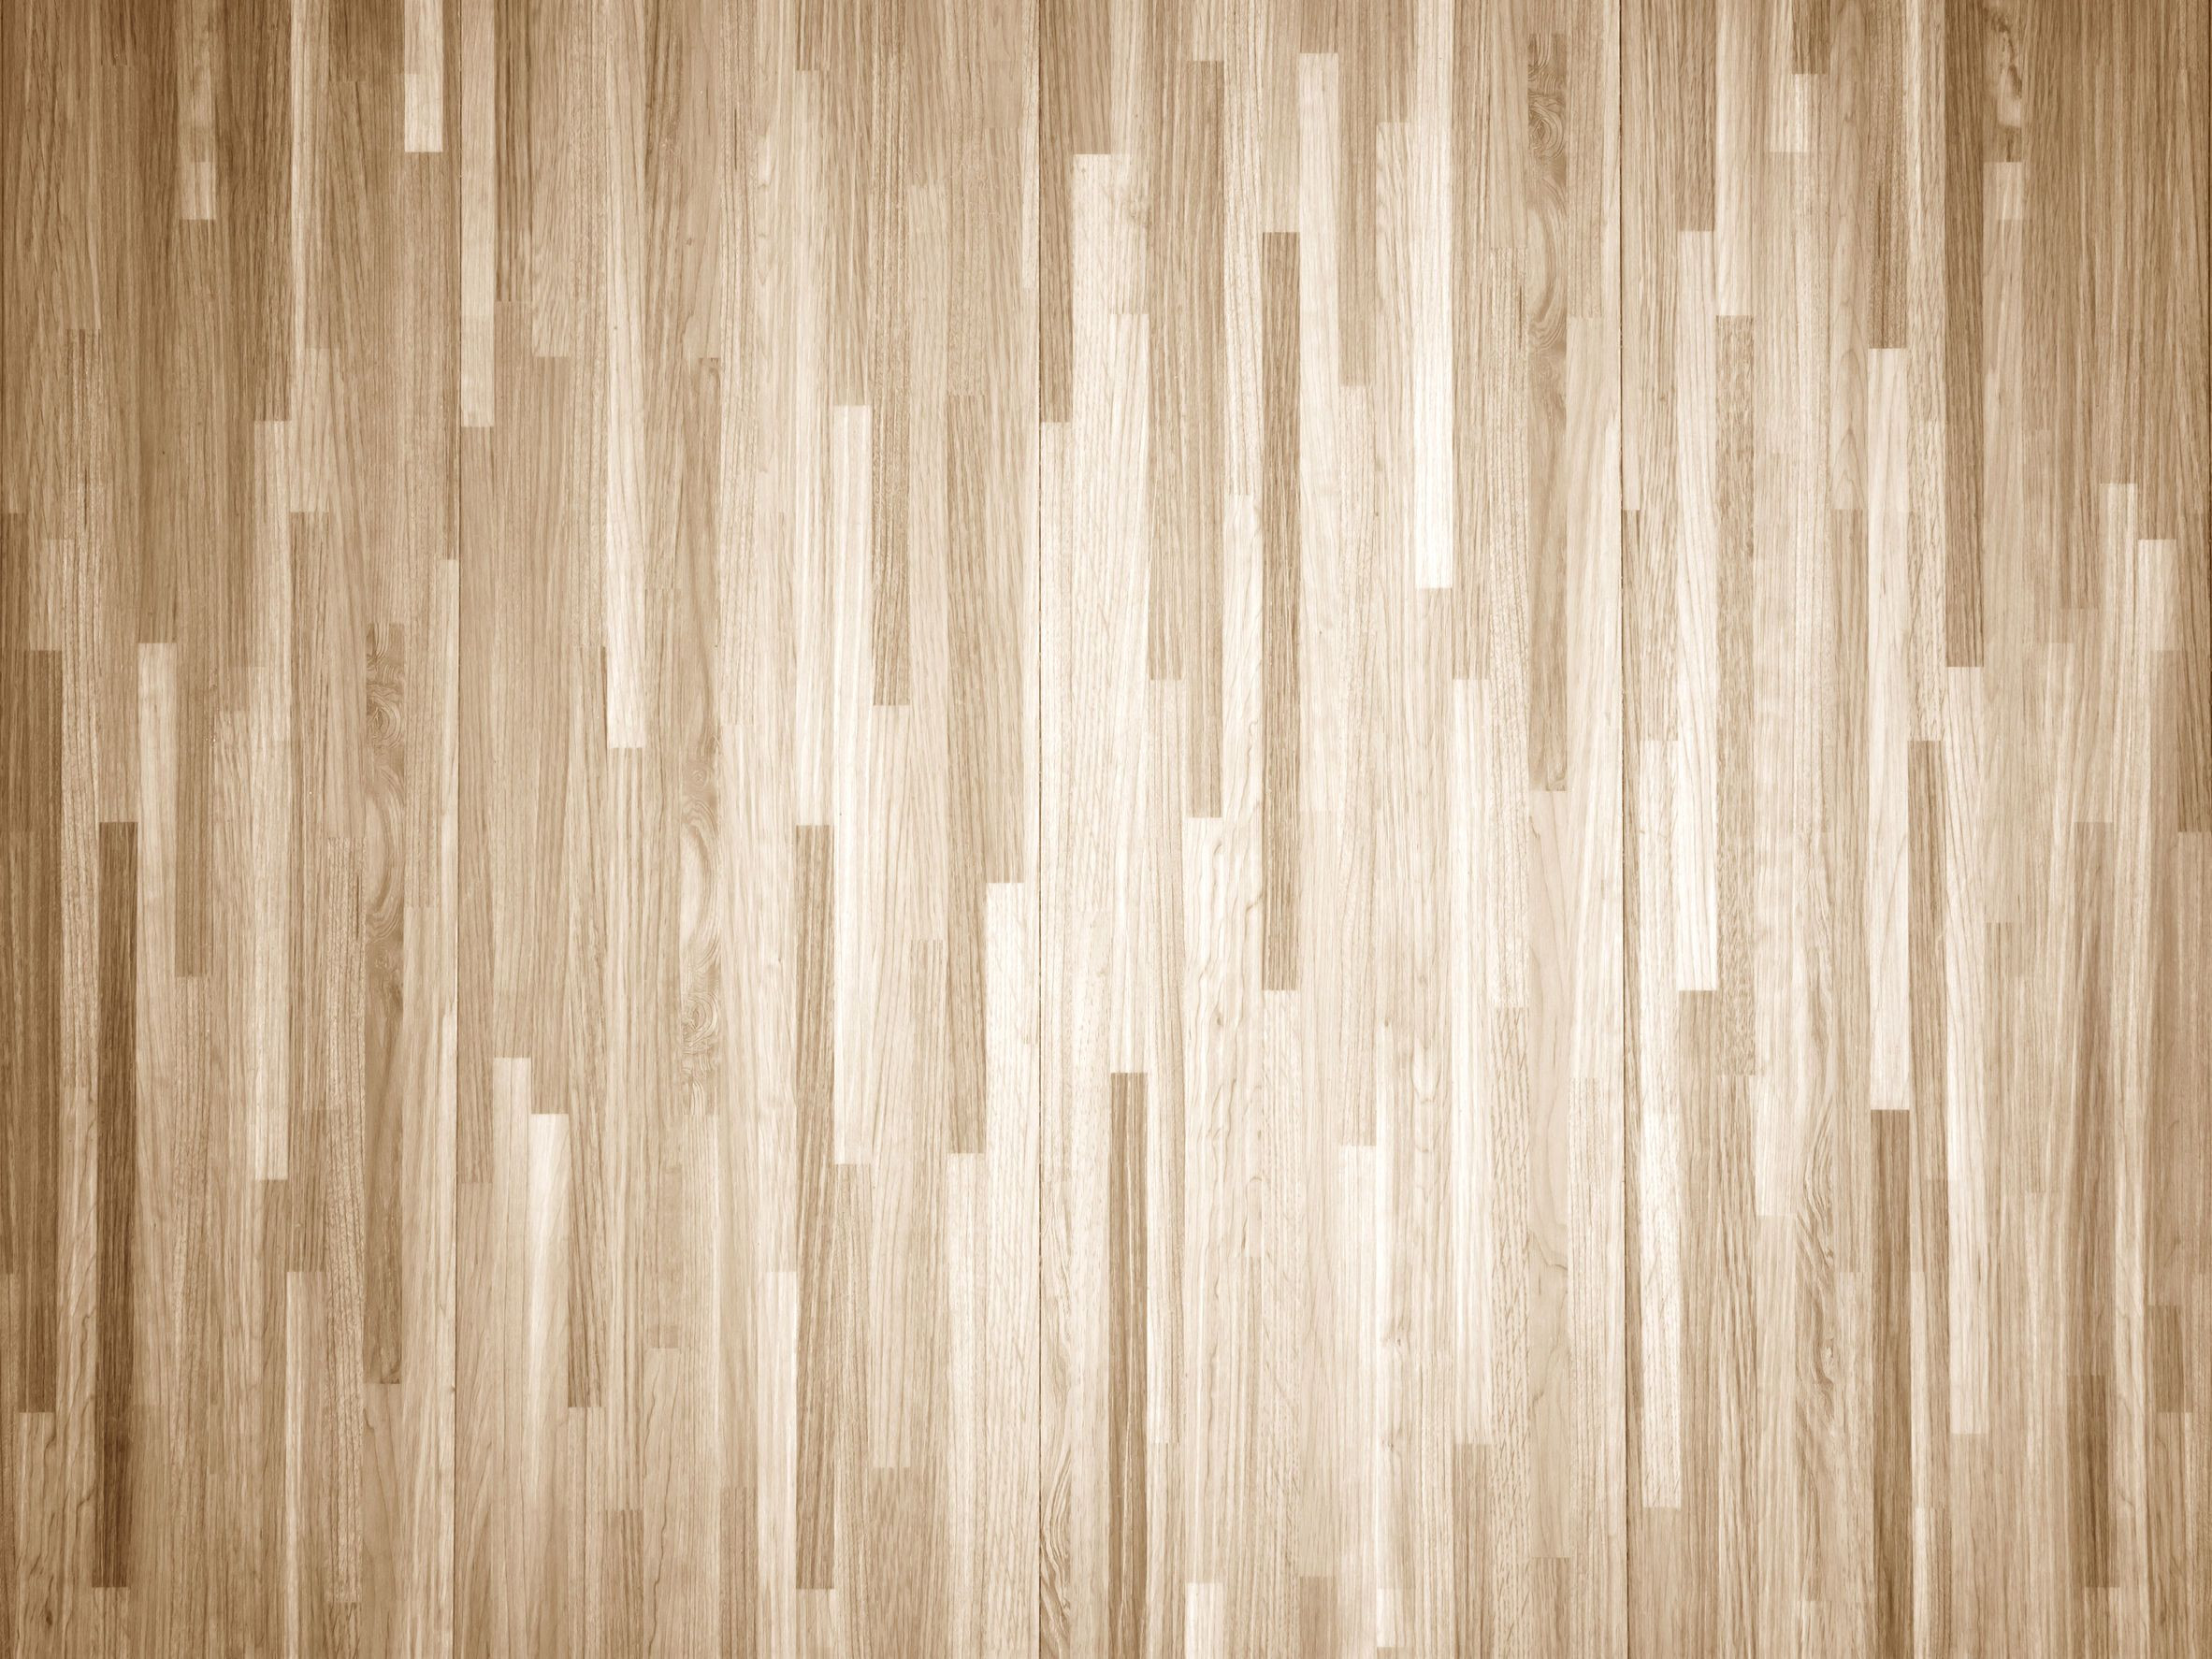 filling gaps in hardwood floors of how to chemically strip wood floors woodfloordoctor com within you